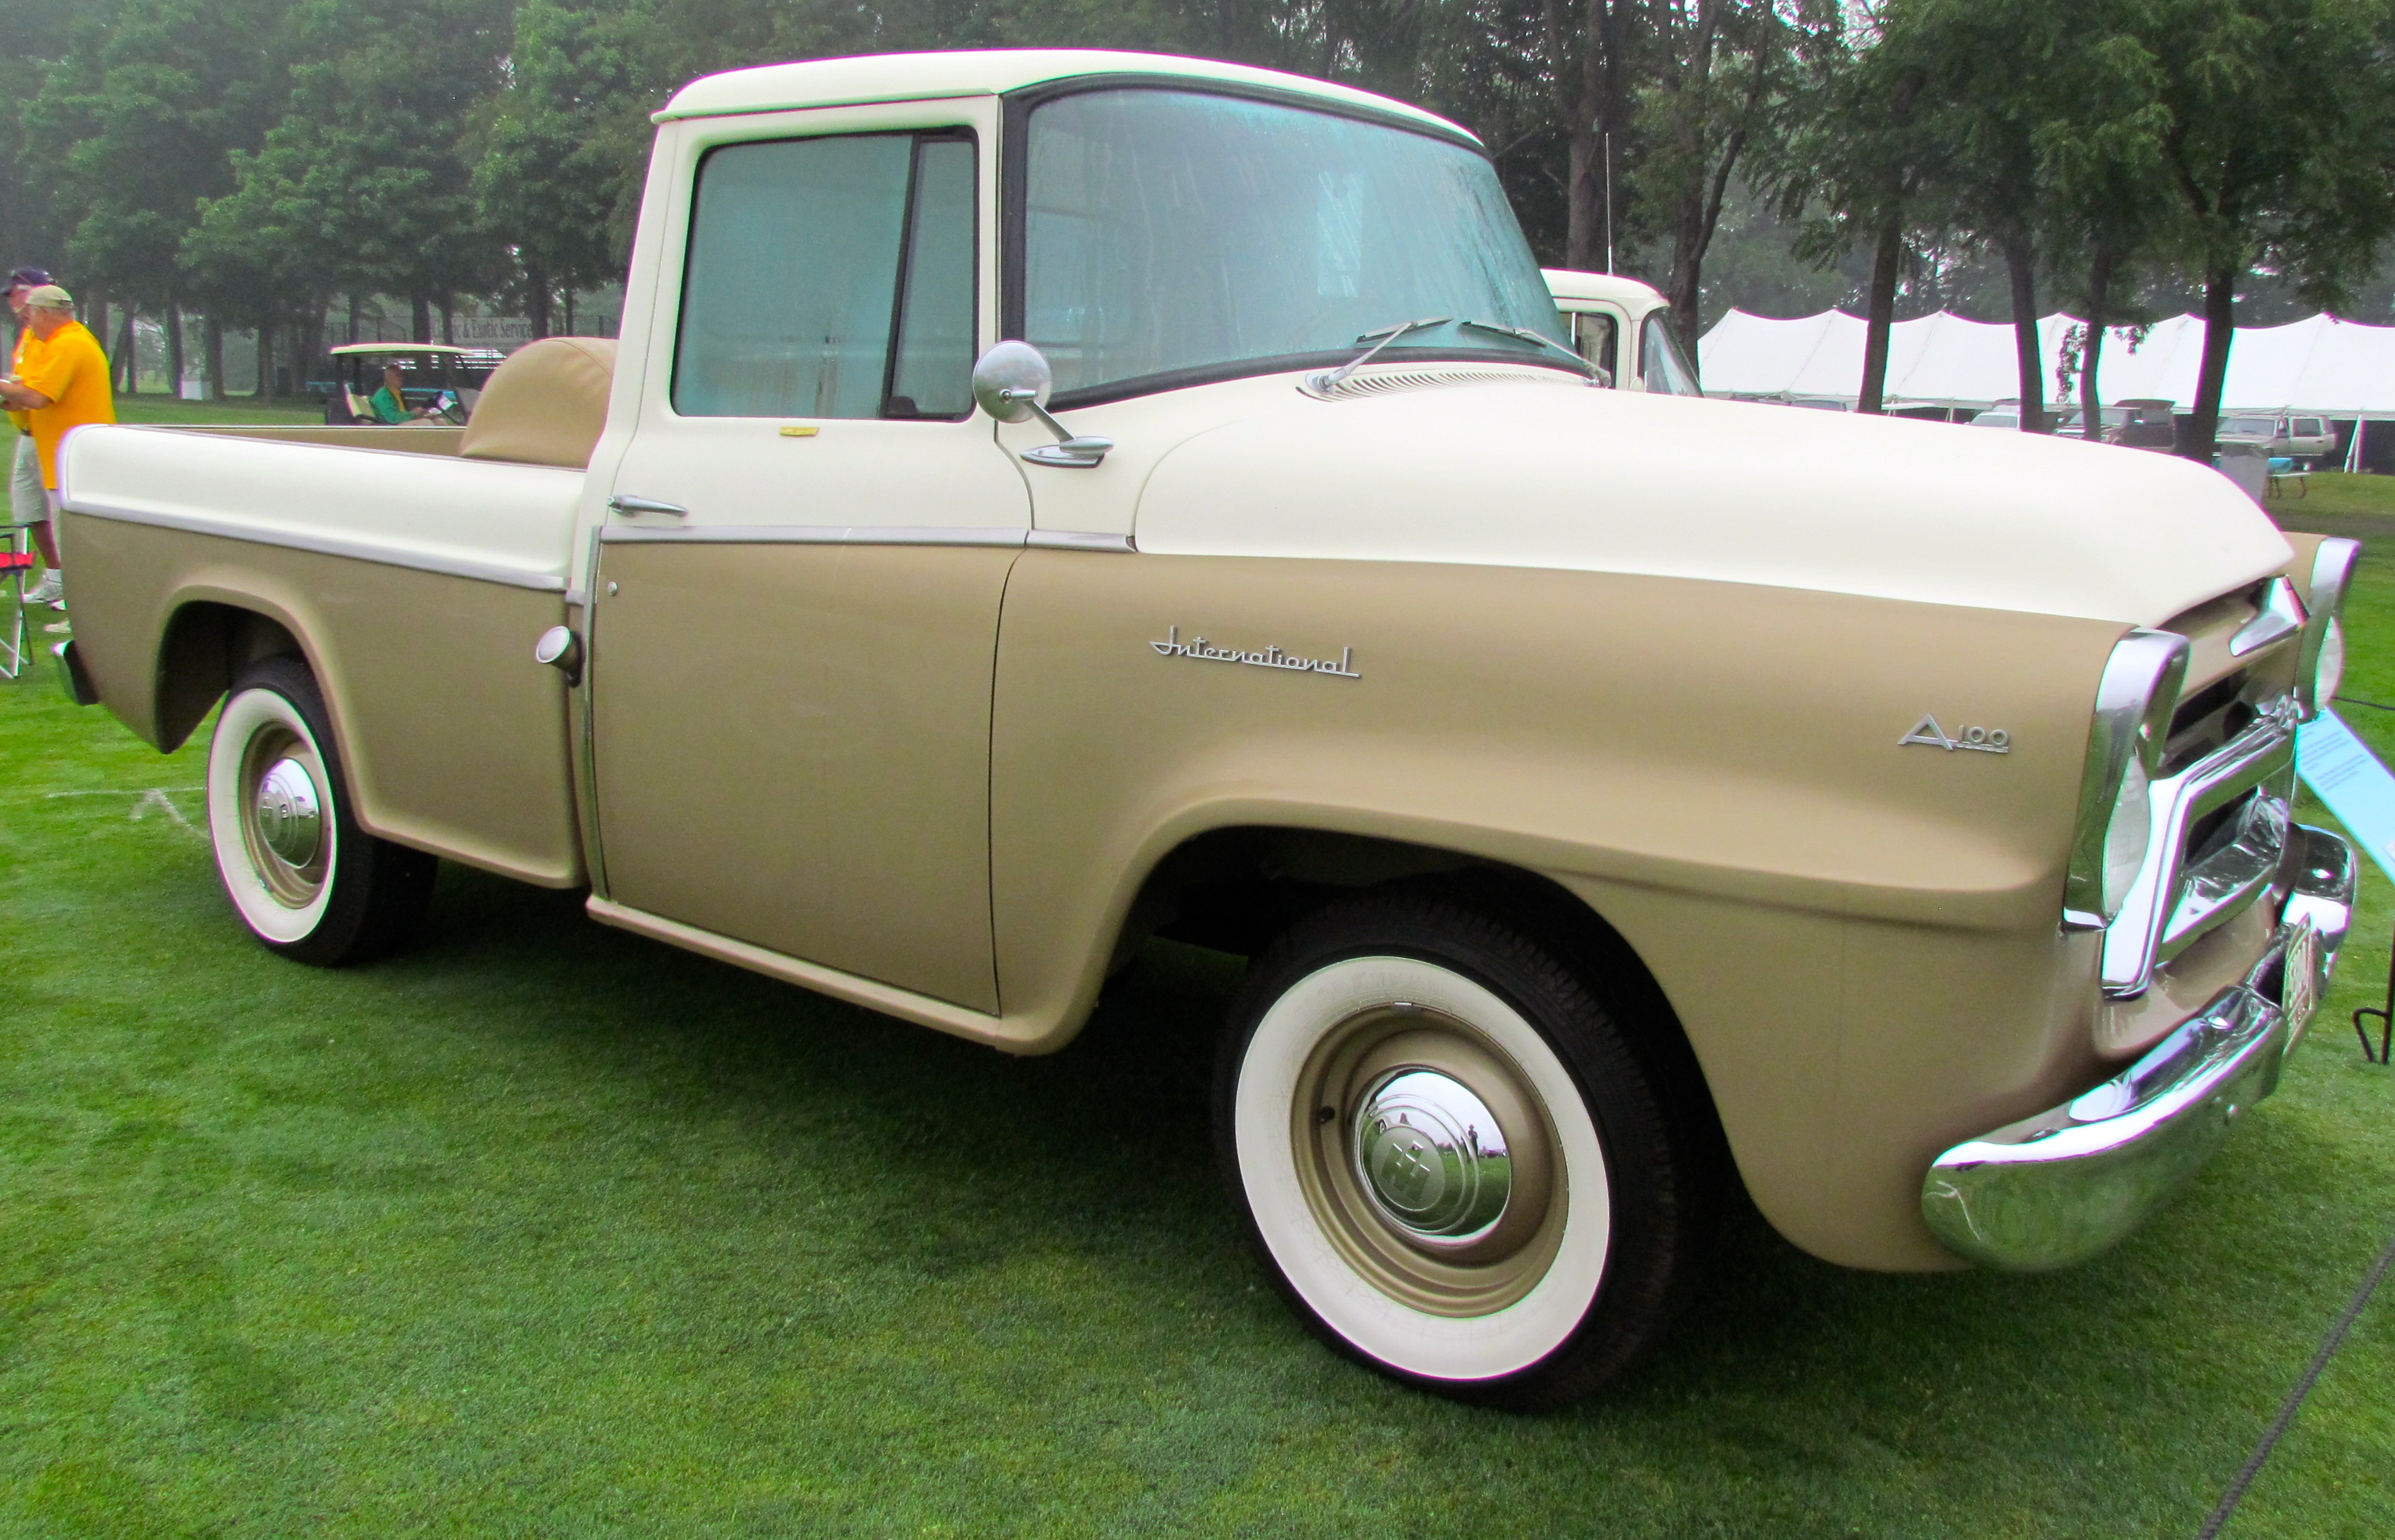 1953 Gmc Truck Wiring Diagram 1957 Diagrams Ford Club Coupe List Of Schematic Circuit U2022 1950